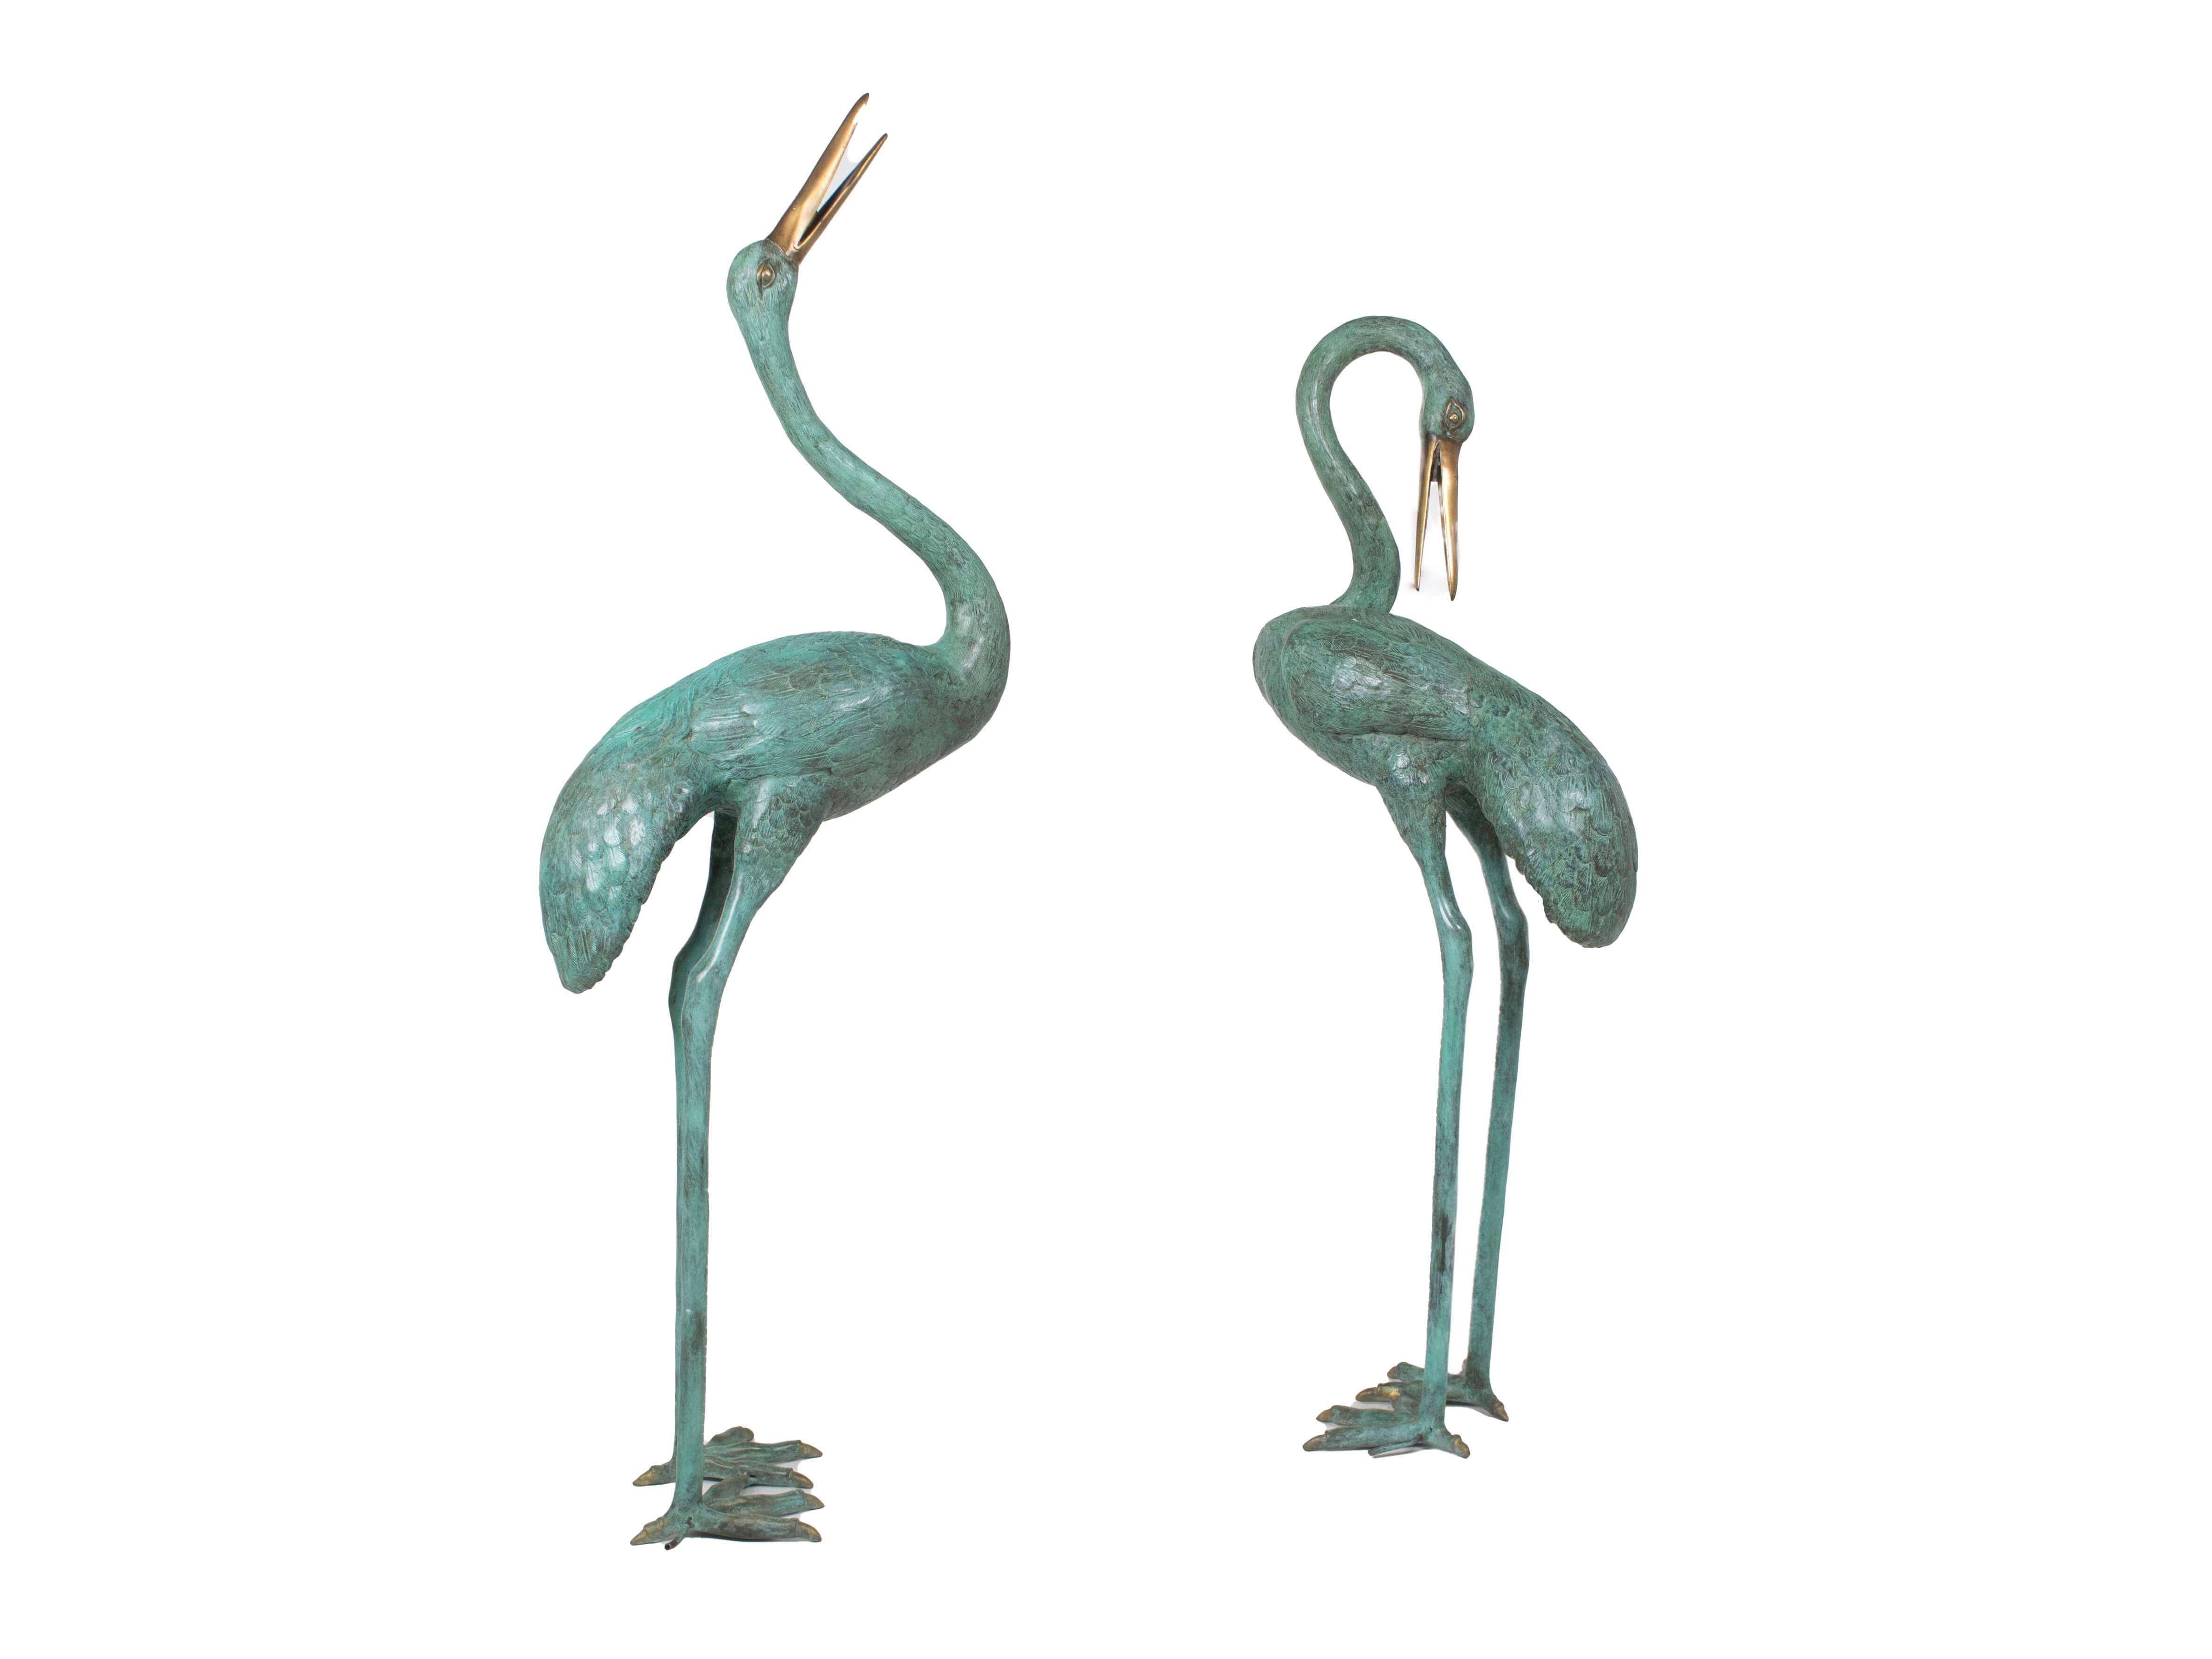 Set of Two Crane Bird Fountains or Statues in Patinated Bronze